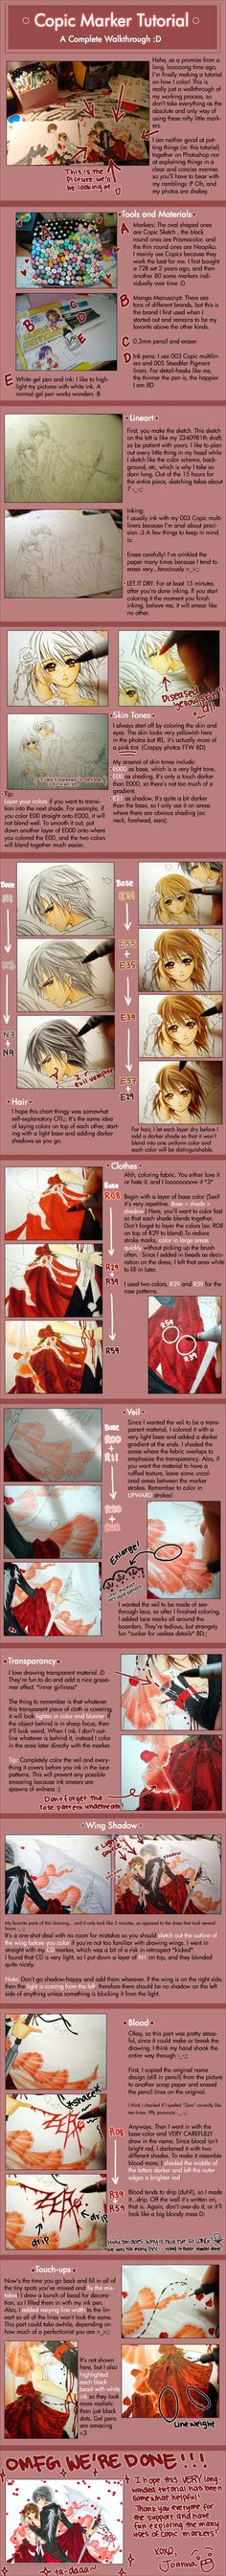 Copic Marker Tutorial I by *cartoongirl7 on deviantART  im awful with markers... i need to work on it.